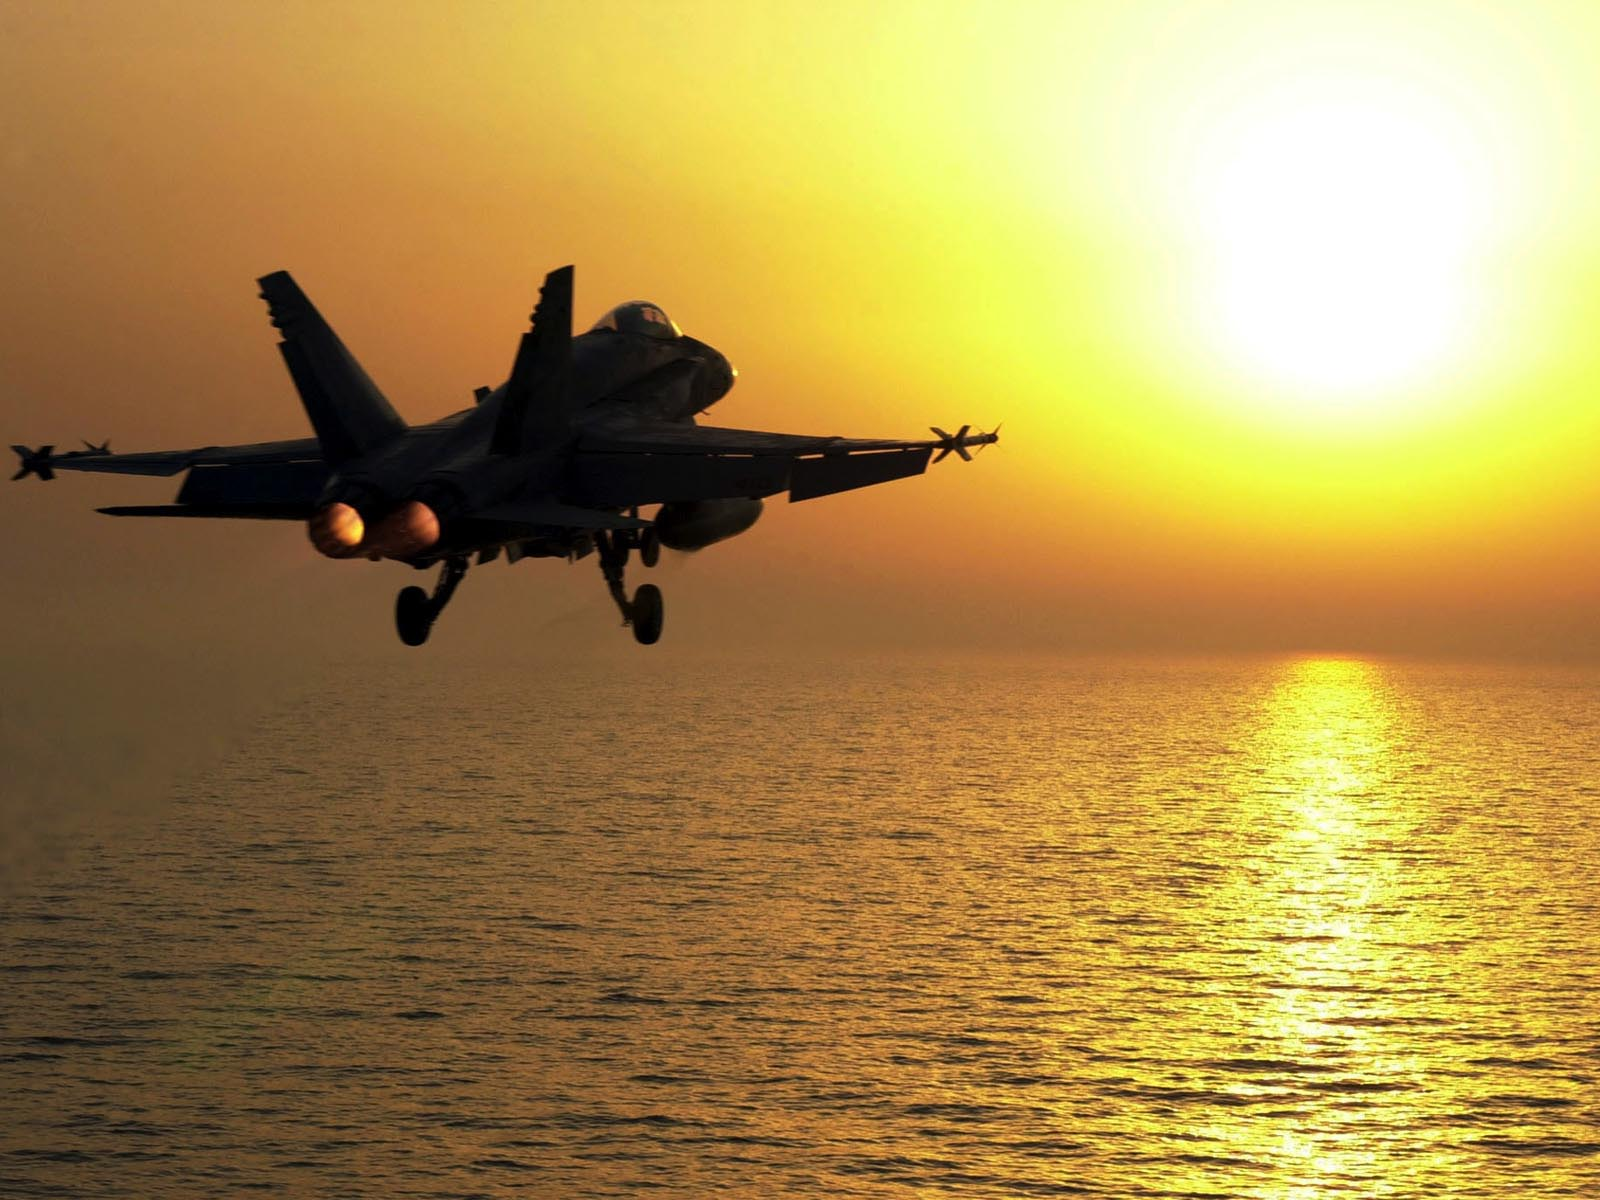 F-18 going into the sun wallpaper